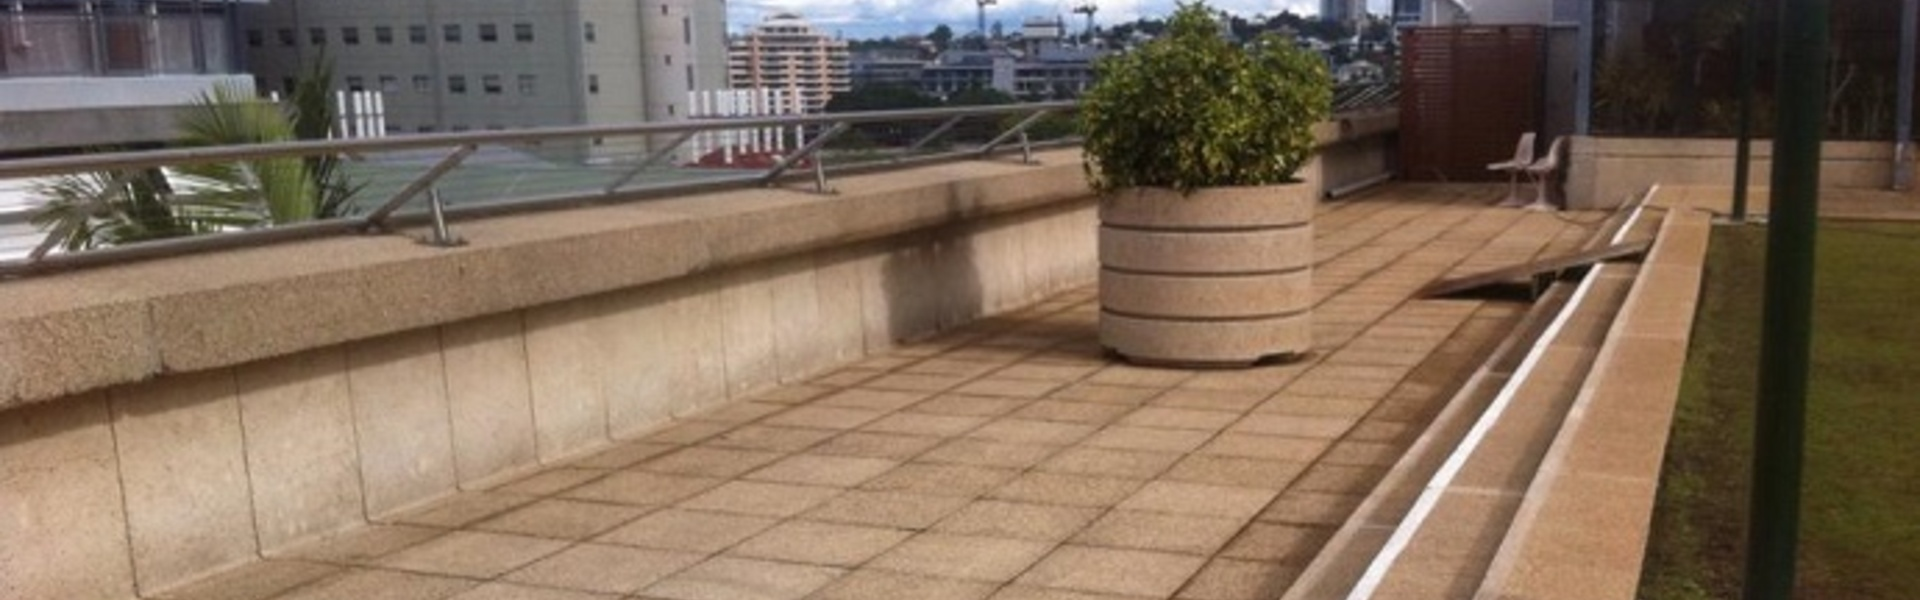 Building_Roof_Top_Paver_Mould_Cleaning.jpg